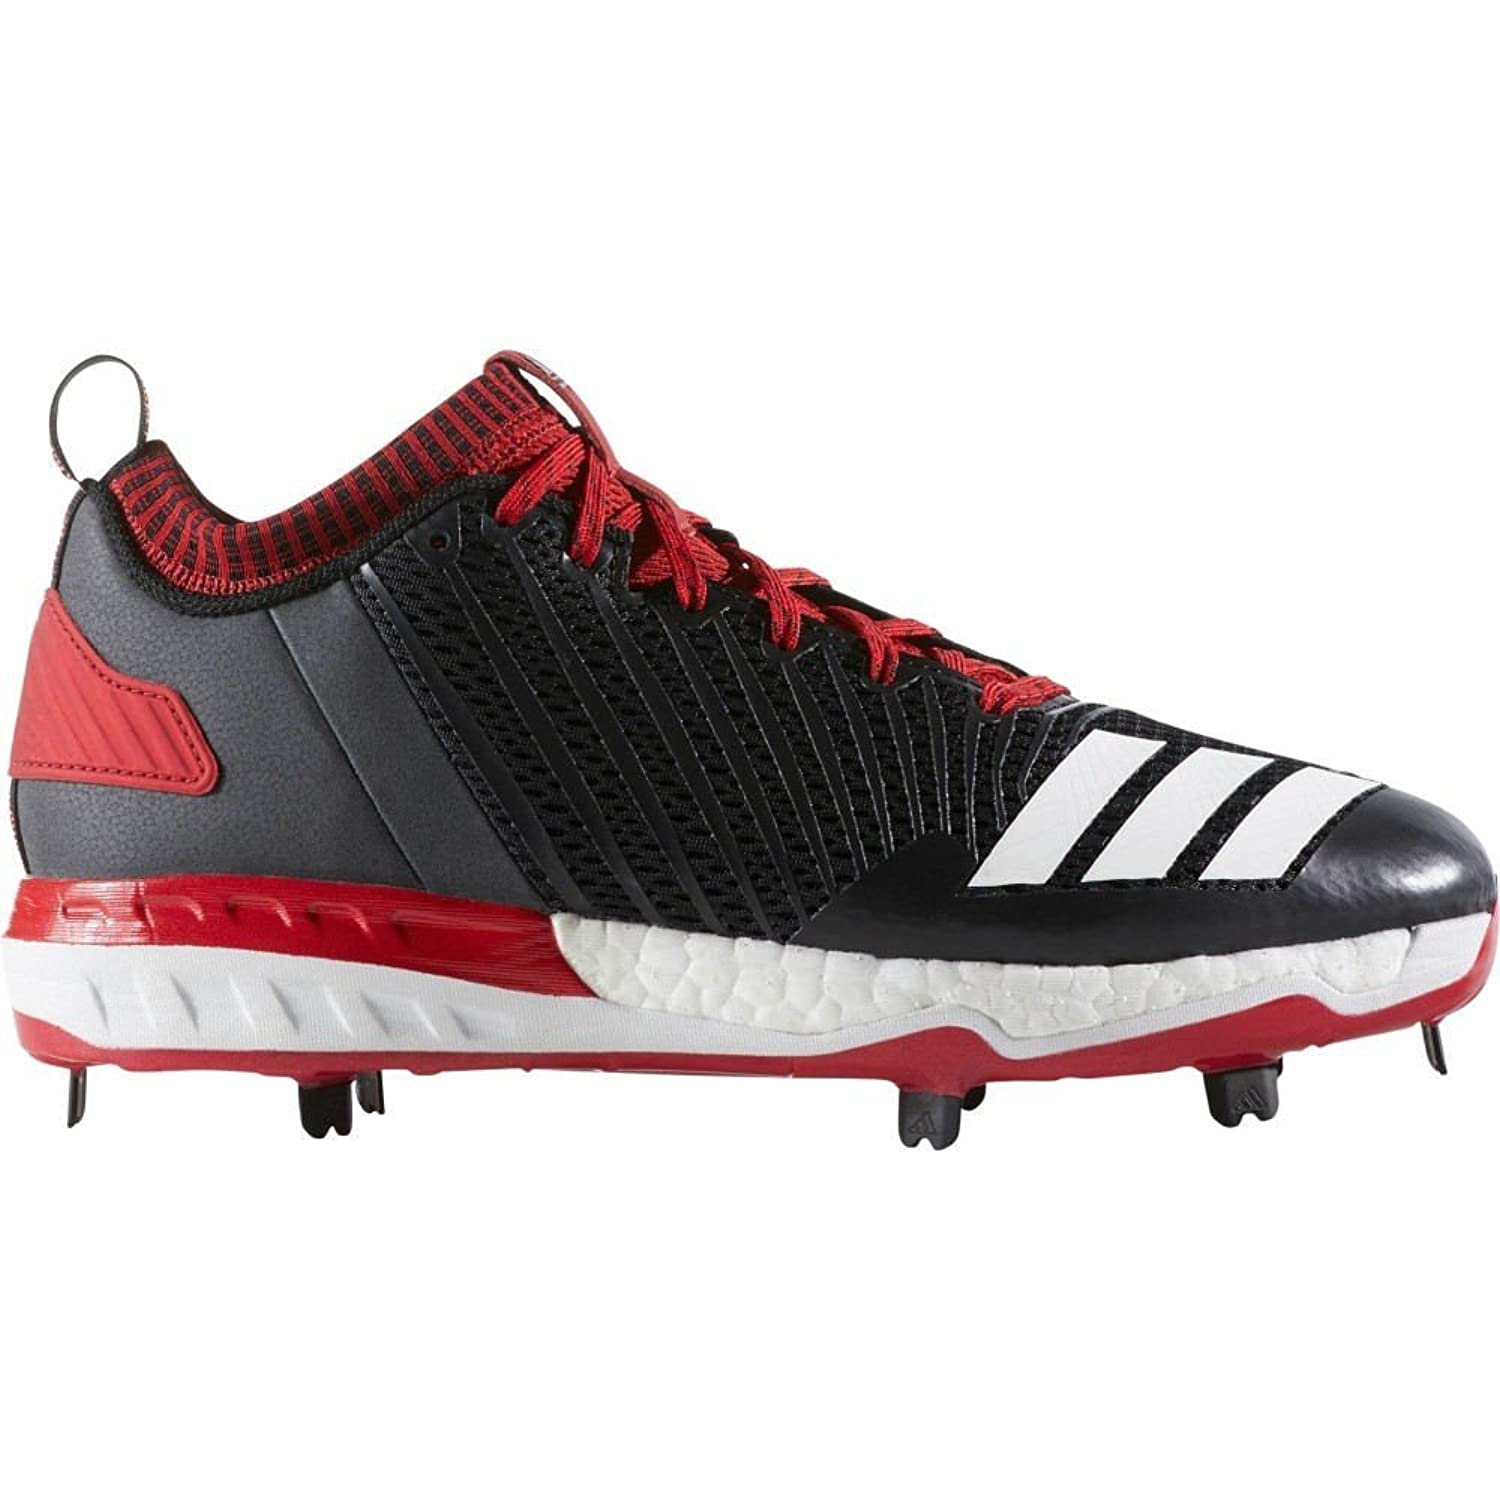 (アディダス) adidas メンズ 野球 シューズ靴 adidas Boost Icon 3 Metal Baseball Cleats [並行輸入品] B077XYVJSK 9.0-Medium